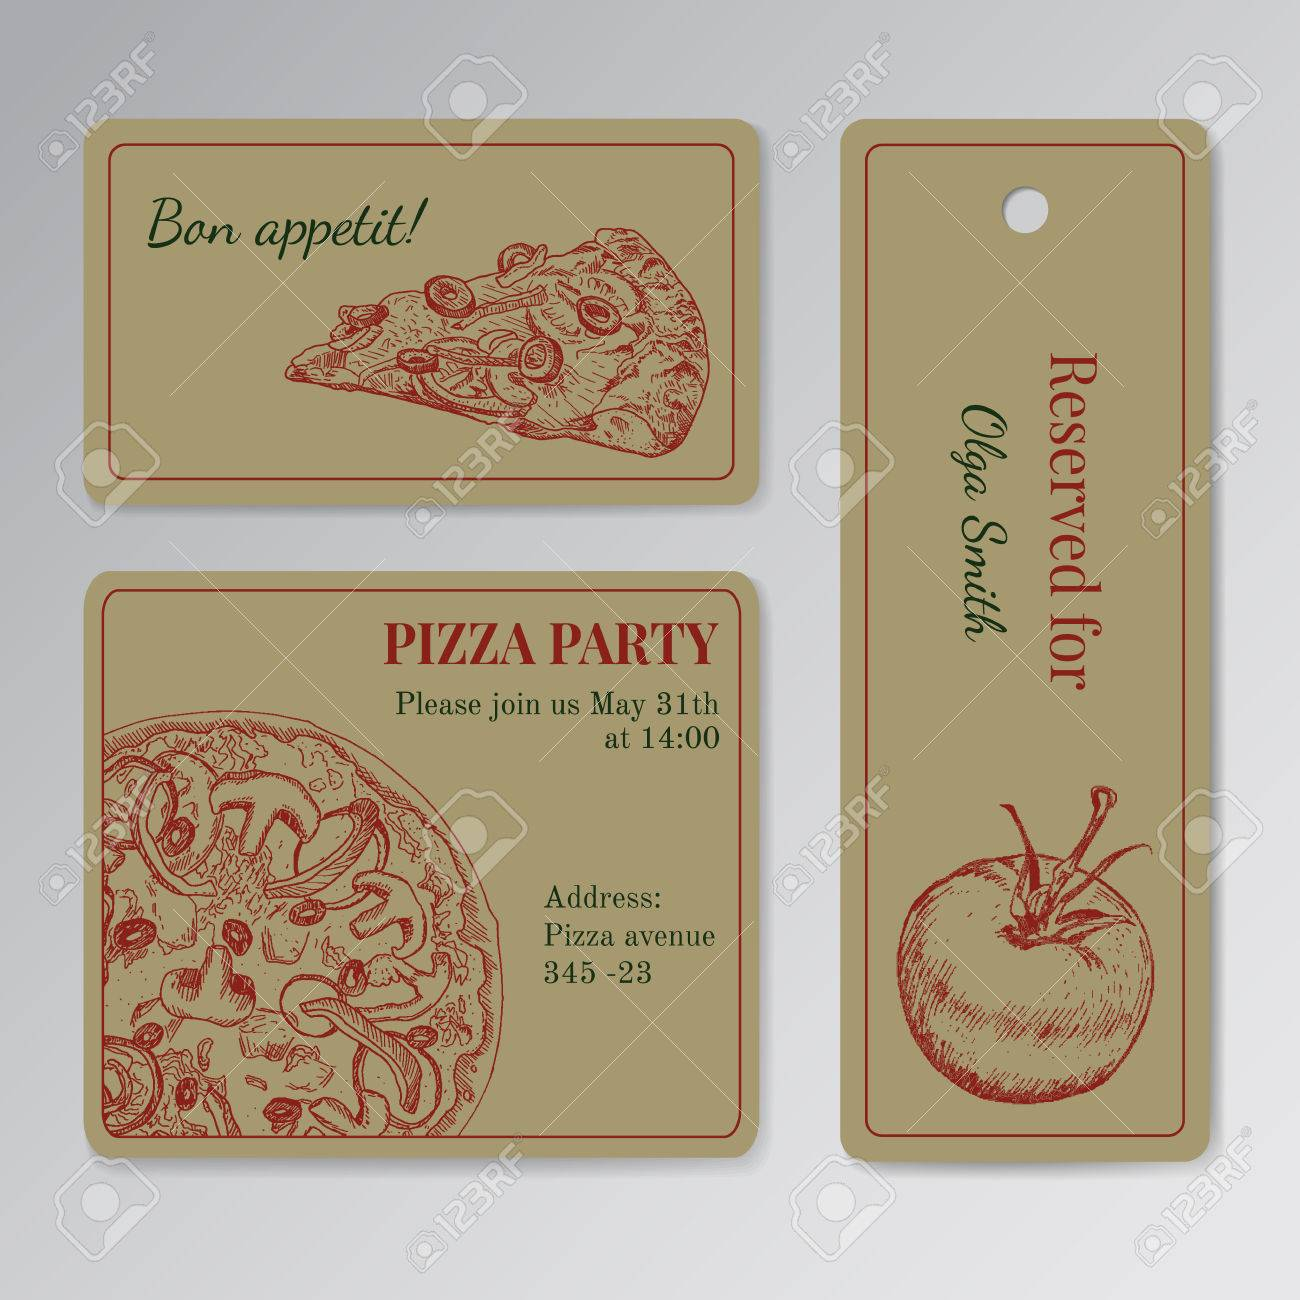 Set Of Cards Templates For Pizza Party Invitation Seat Reservation Etc Engraving Old